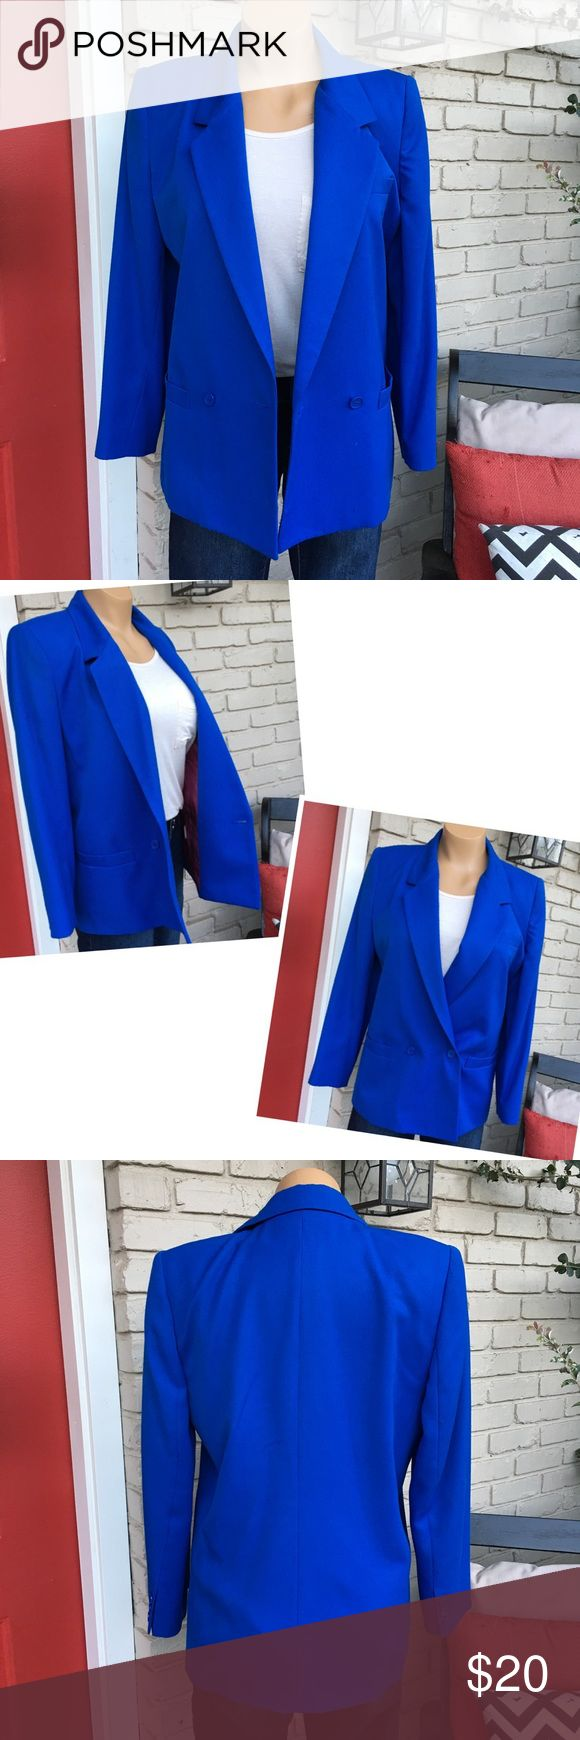 Royal blue blazer with free matching pencil skirt Vintage royal blue blazer. Great shape except for a teeny mark on right shoulder and a little piling ONLY on shoulders as seen in last pic. Otherwise, great condition! Satin interior and has pockets! Size 6P. I am including the matching royal blue pencil skirt free with it when shipped (not pictured but in fantastic condition)! :-) Worthington Jackets & Coats Blazers